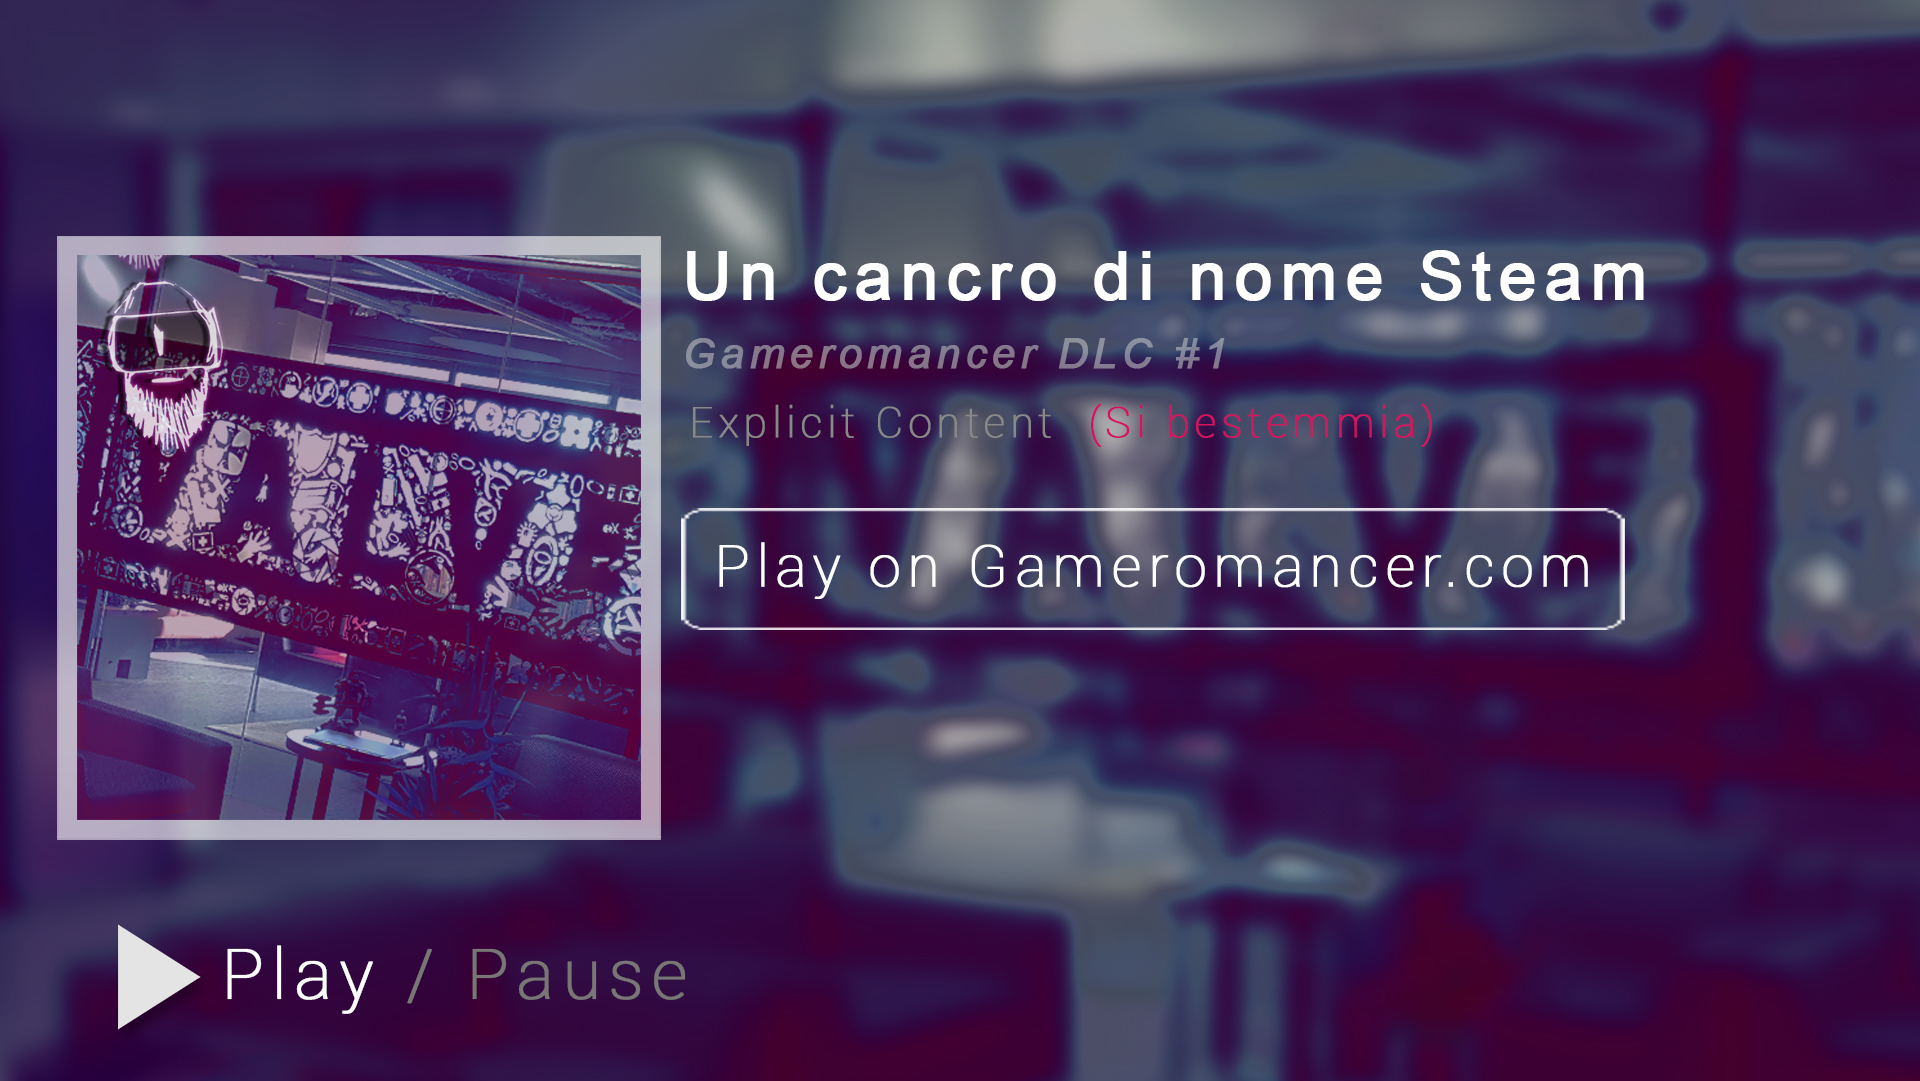 Gameromancer DLC #1: un cancro di nome Steam